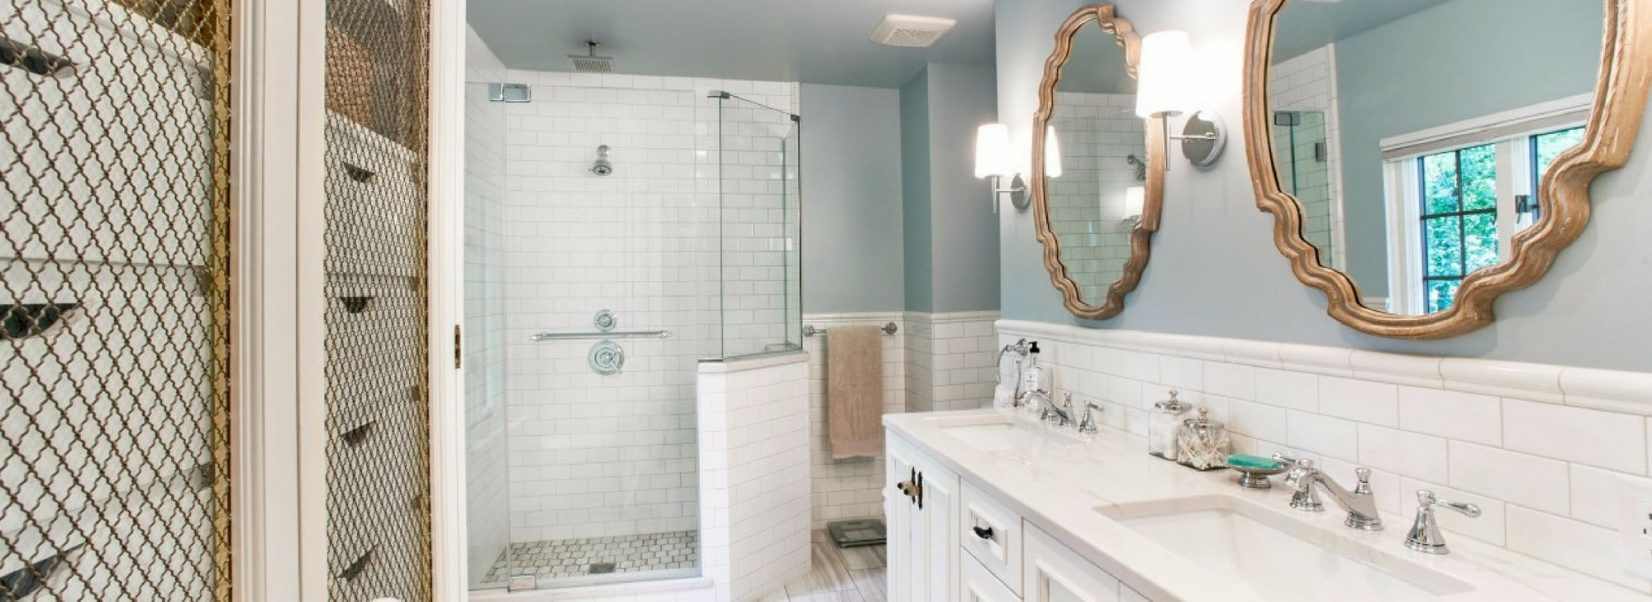 Luxury Bathroom Design for Your St. Louis Home